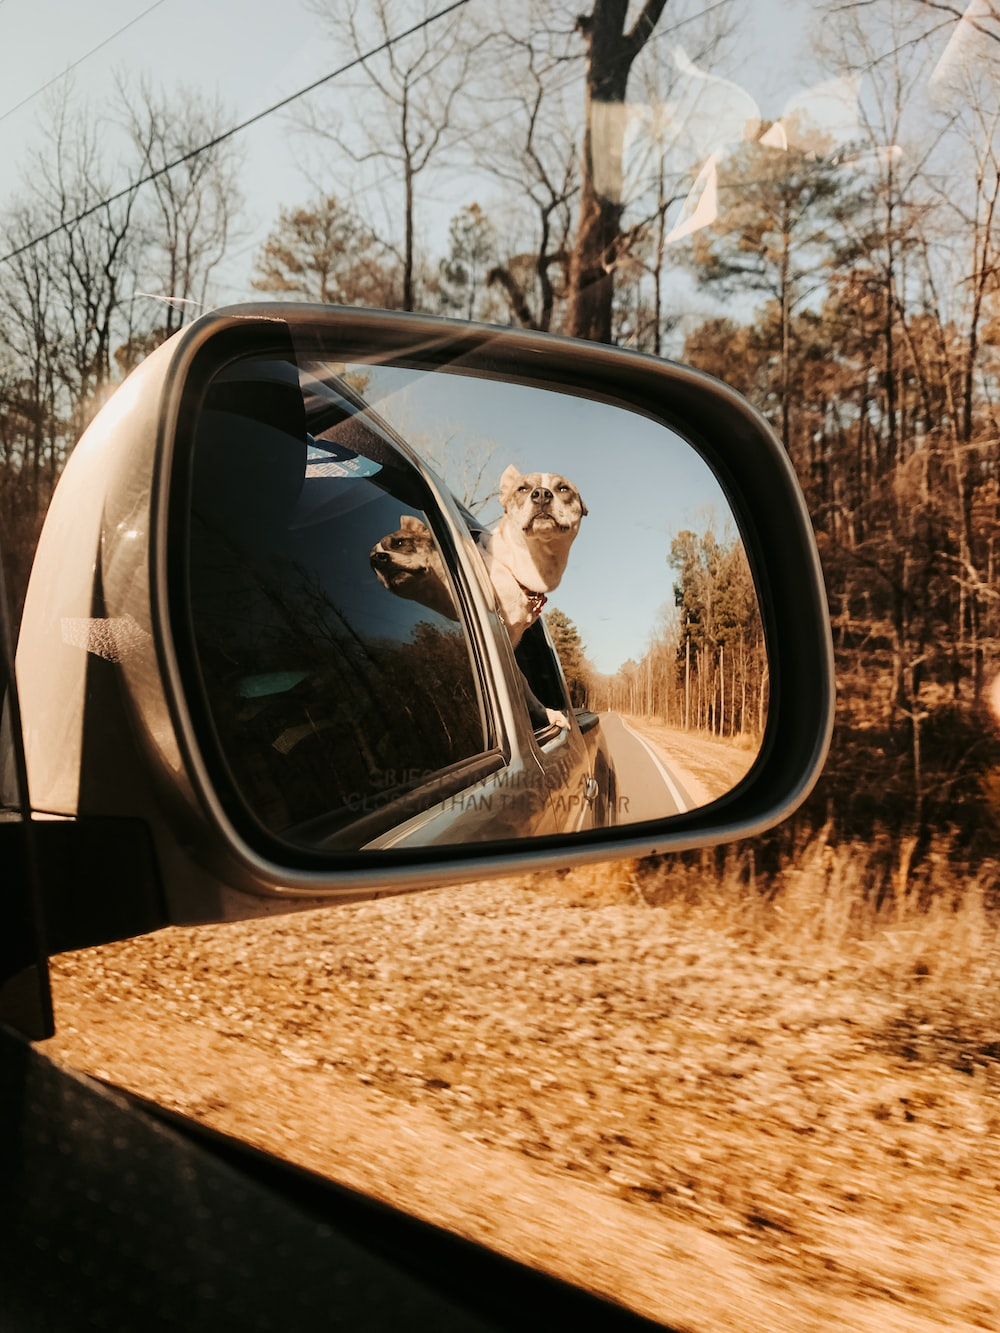 reflection of man in car side mirror